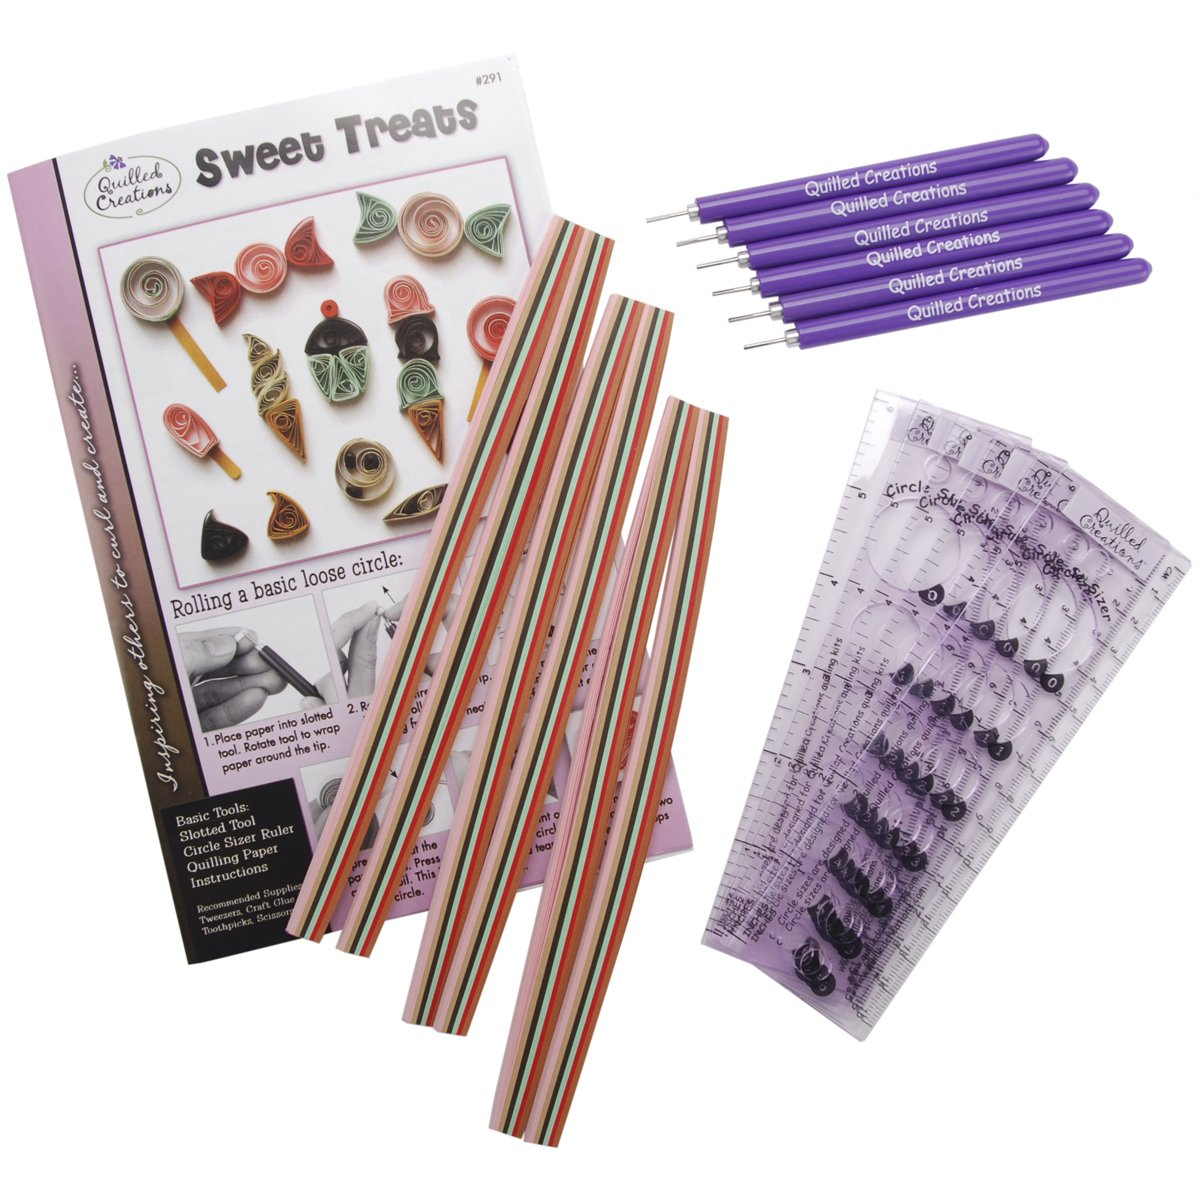 Quilled Creations Quilling Class Pack Kit, Sweet Treats by Quilled Creations